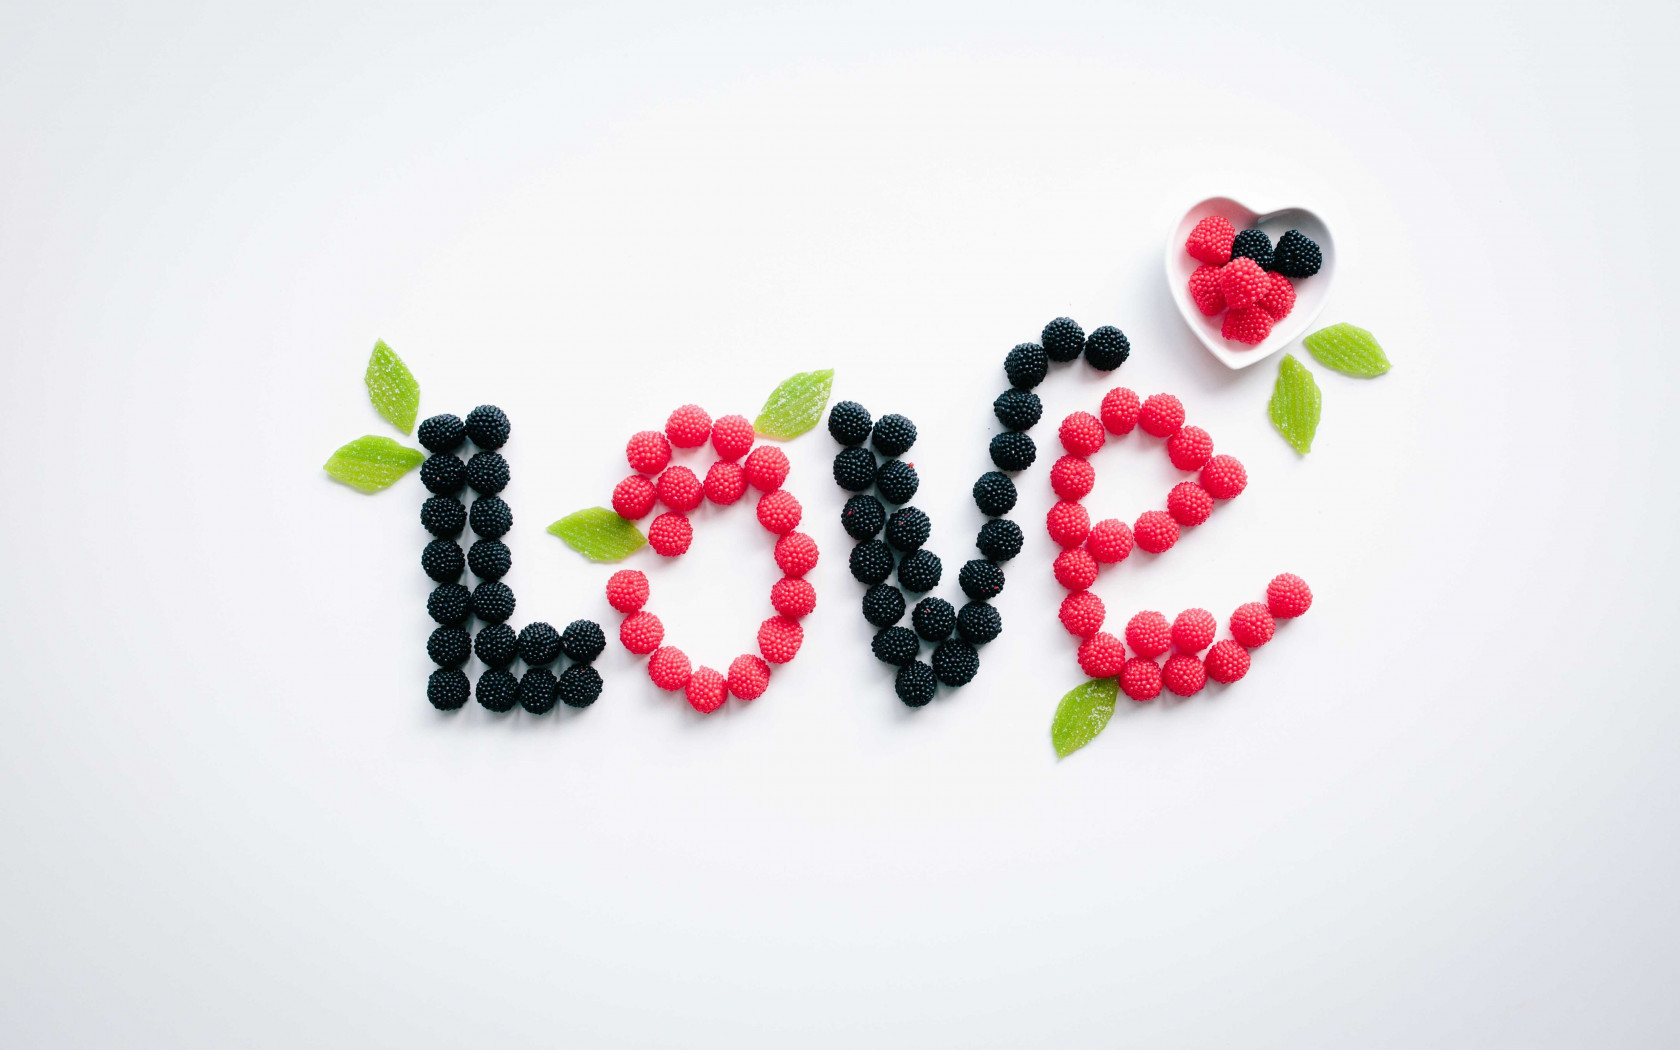 Love message with fruits | 1680x1050 wallpaper